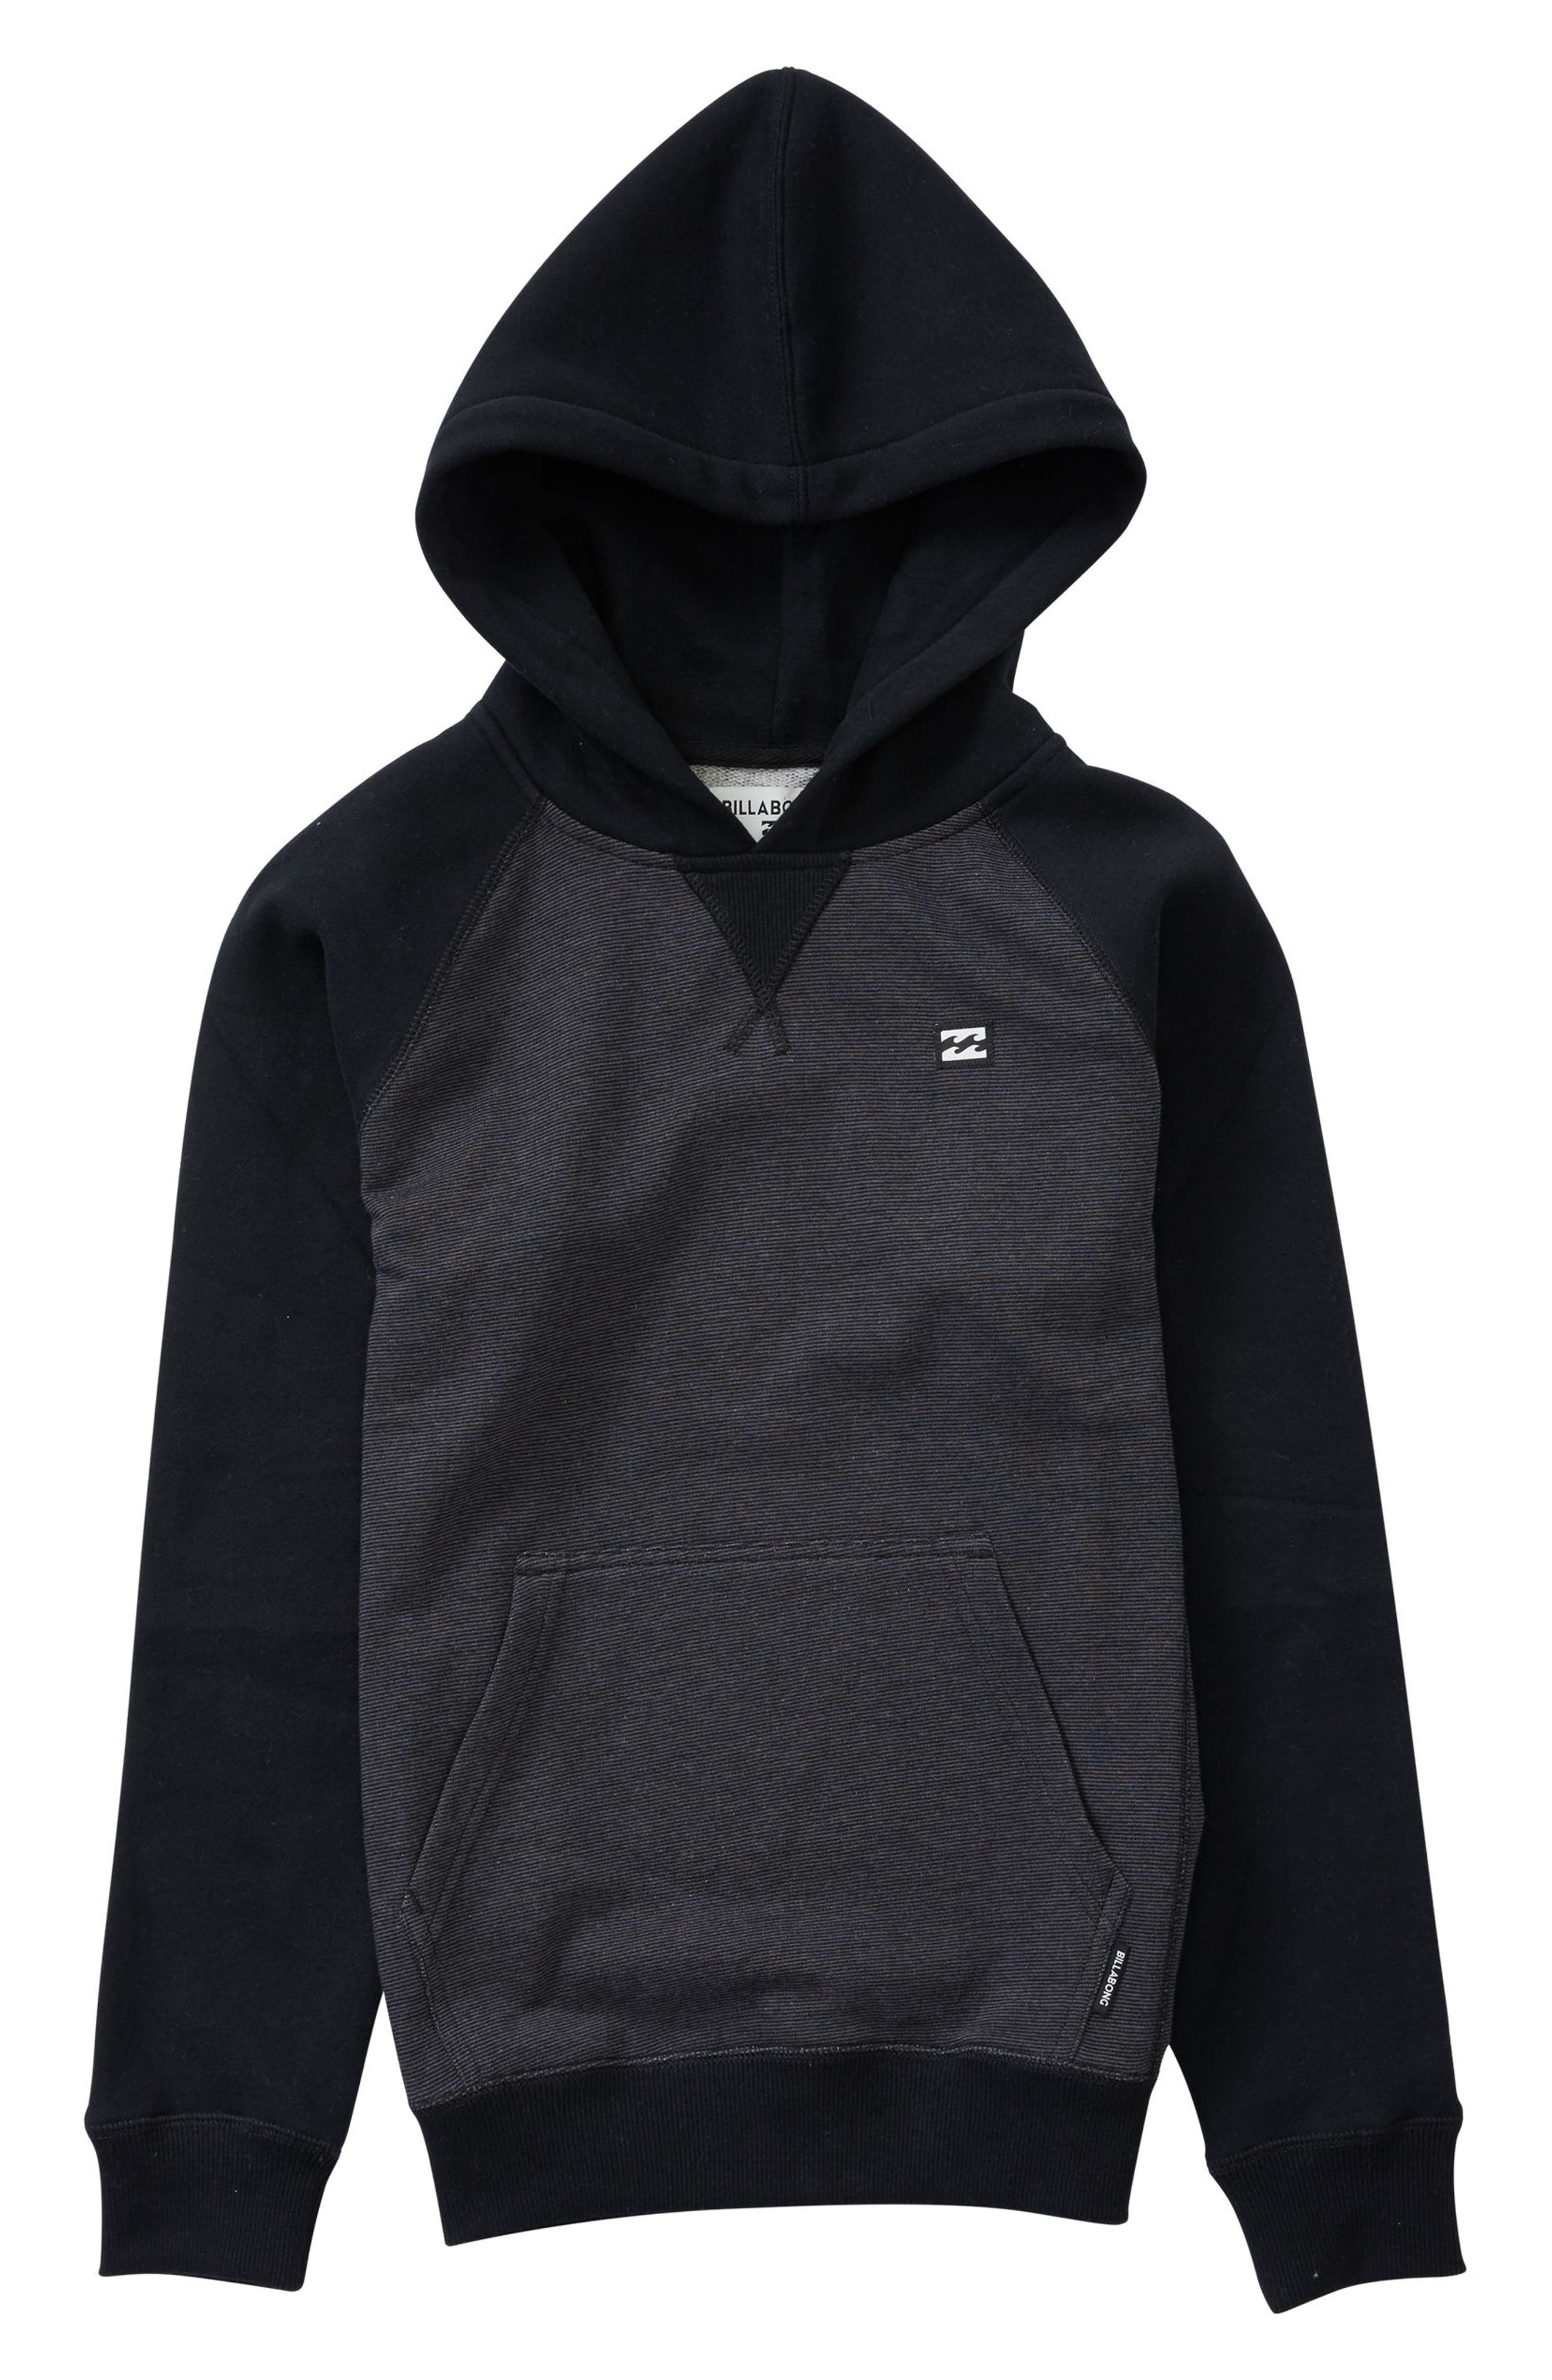 Balance Pullover Hoodie,                         Main,                         color, 002